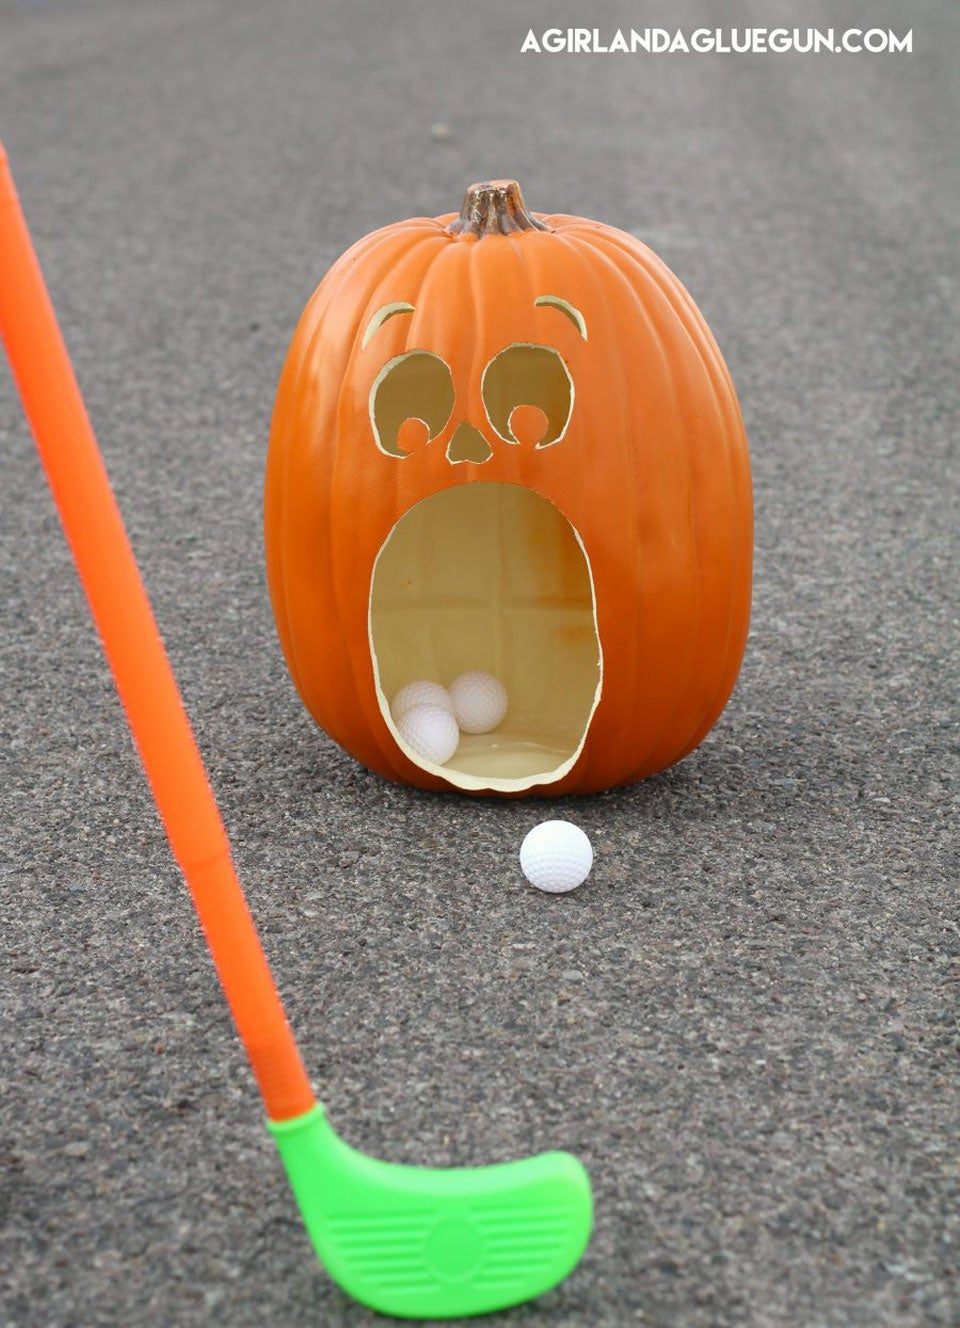 This fun carving idea doubles as a fun putting game.